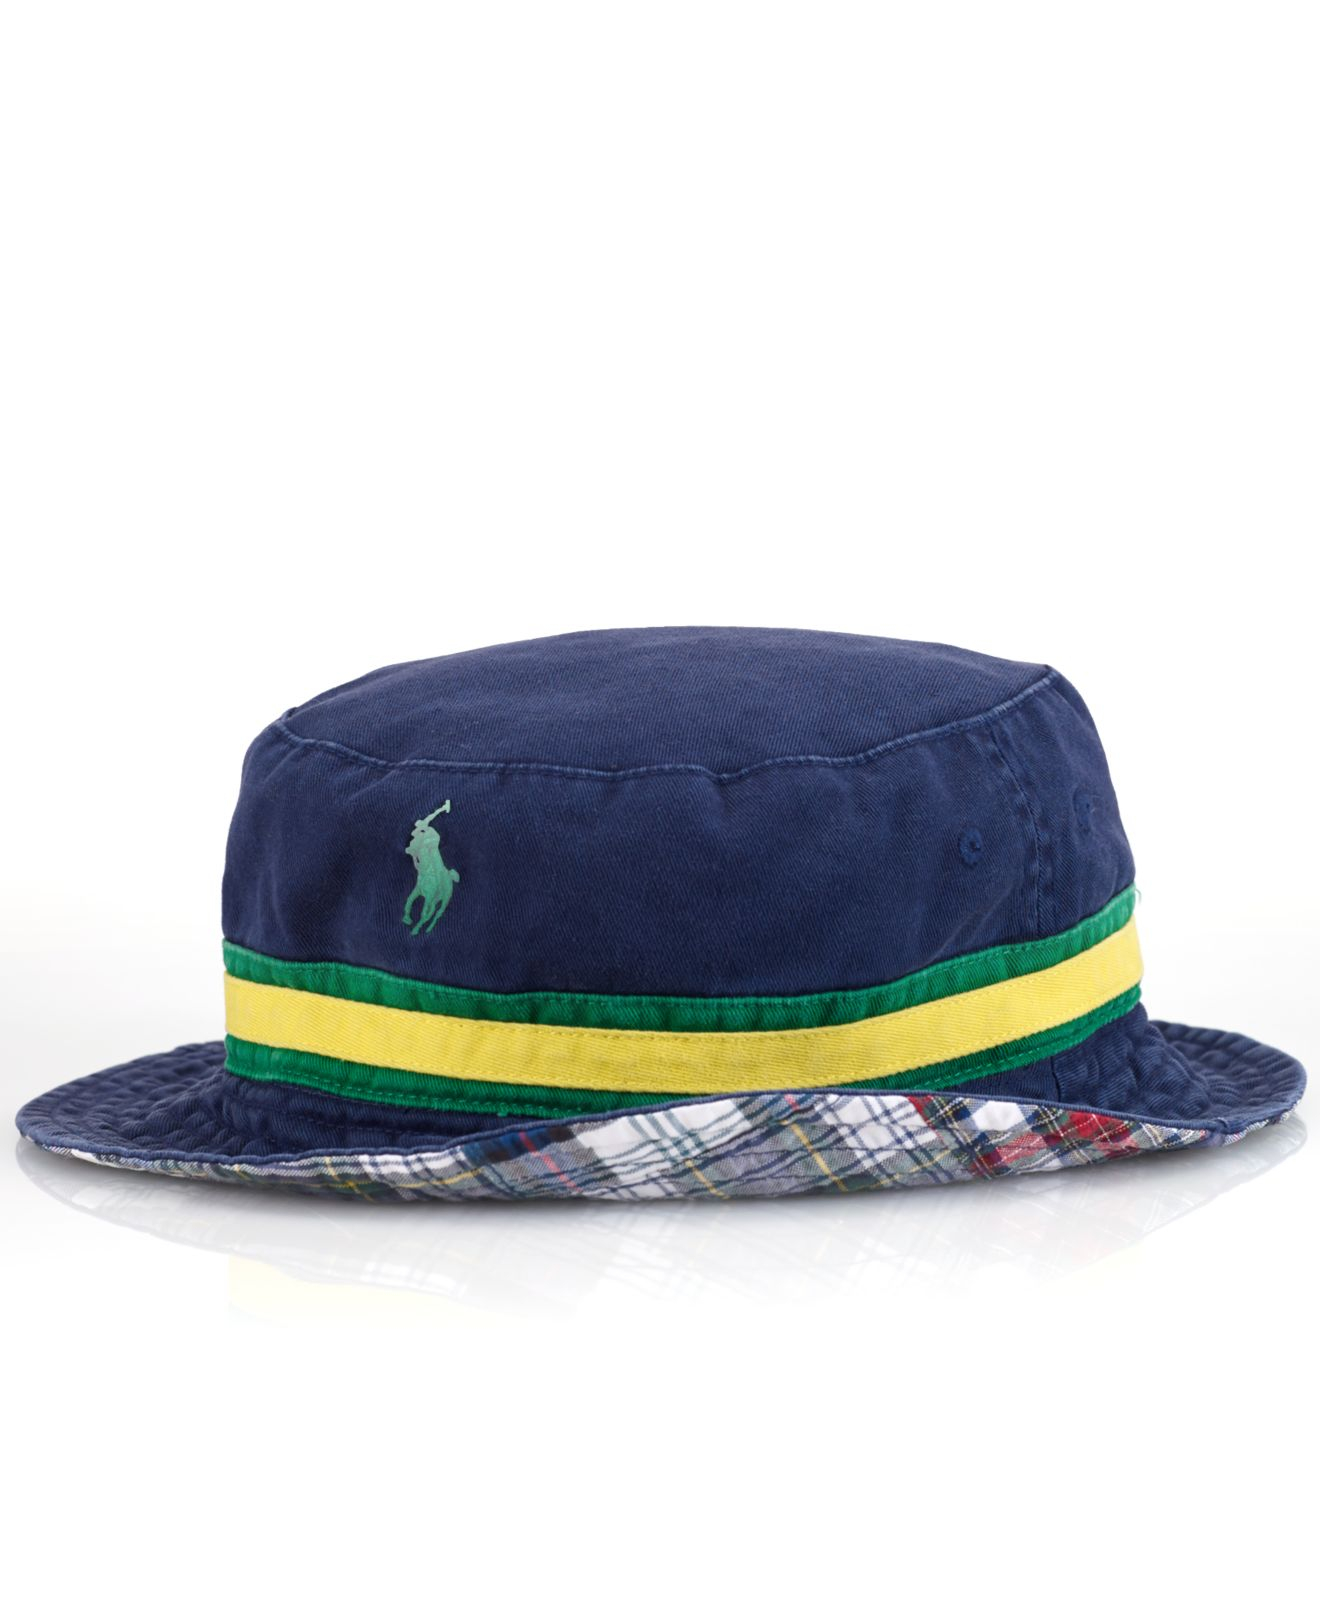 295ed1556f8 Lyst - Polo Ralph Lauren Reversible Plaid Bucket Hat in Blue for Men